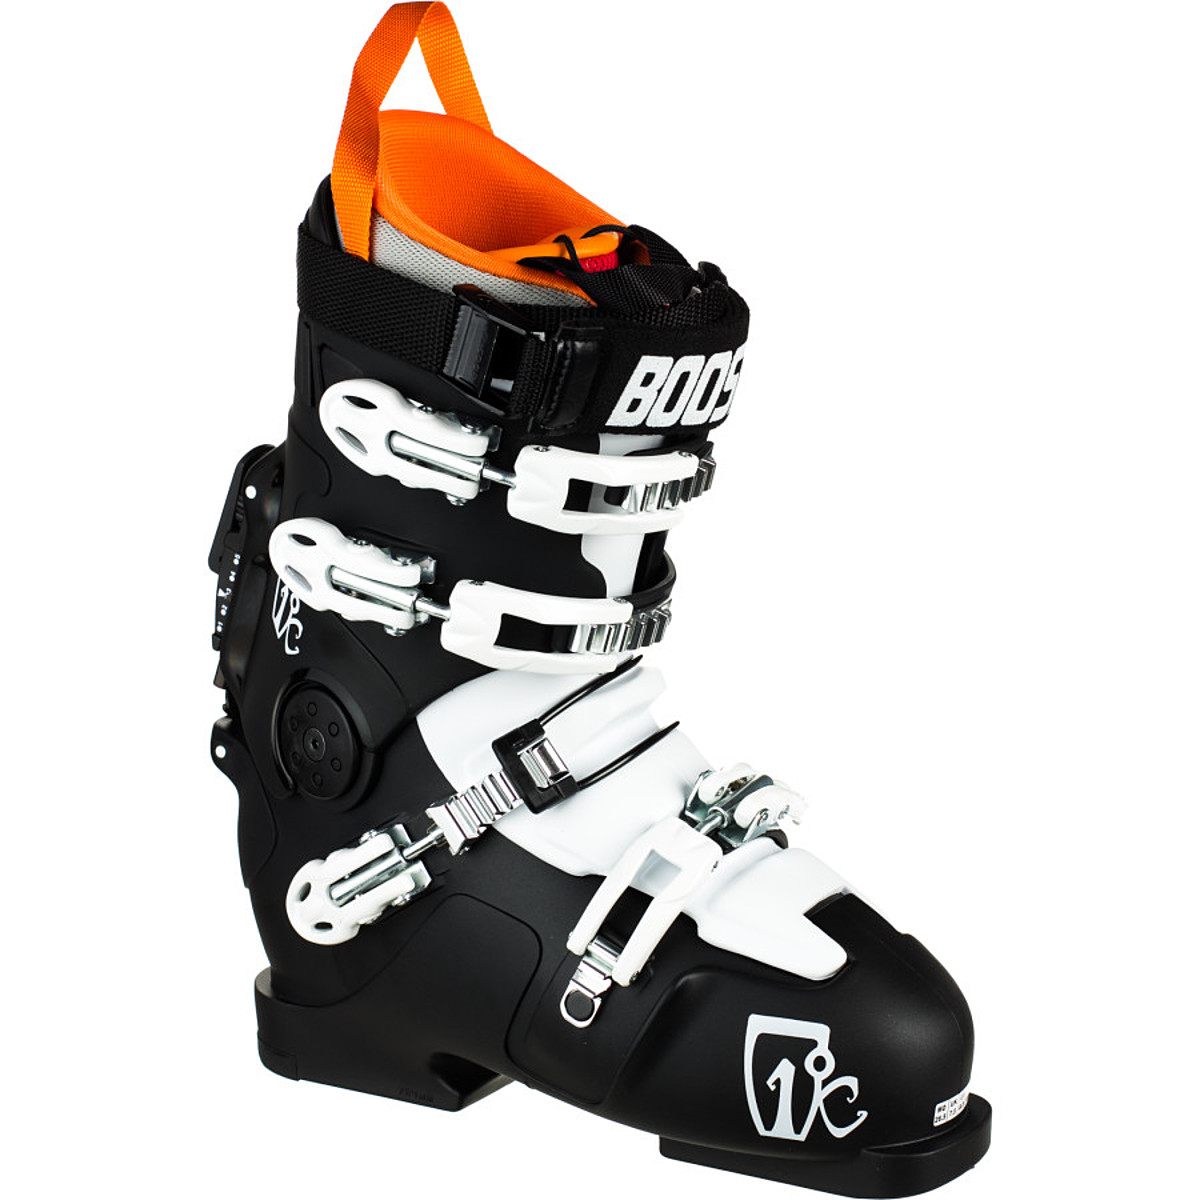 photo of a Icelantic alpine touring boot